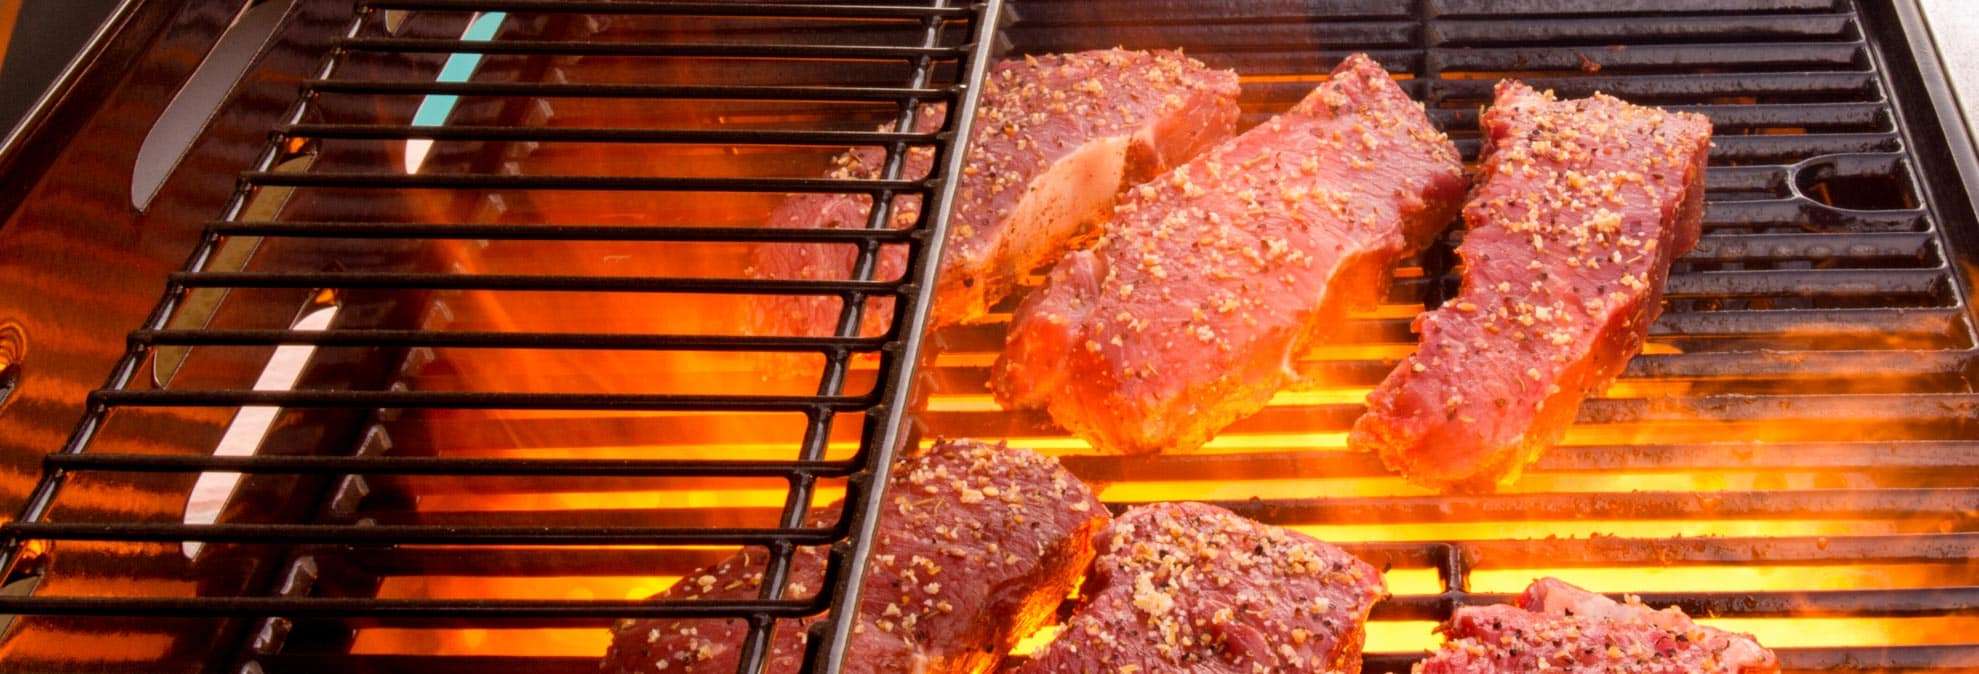 The Worst Gas Grills From Consumer Reports\' Tests